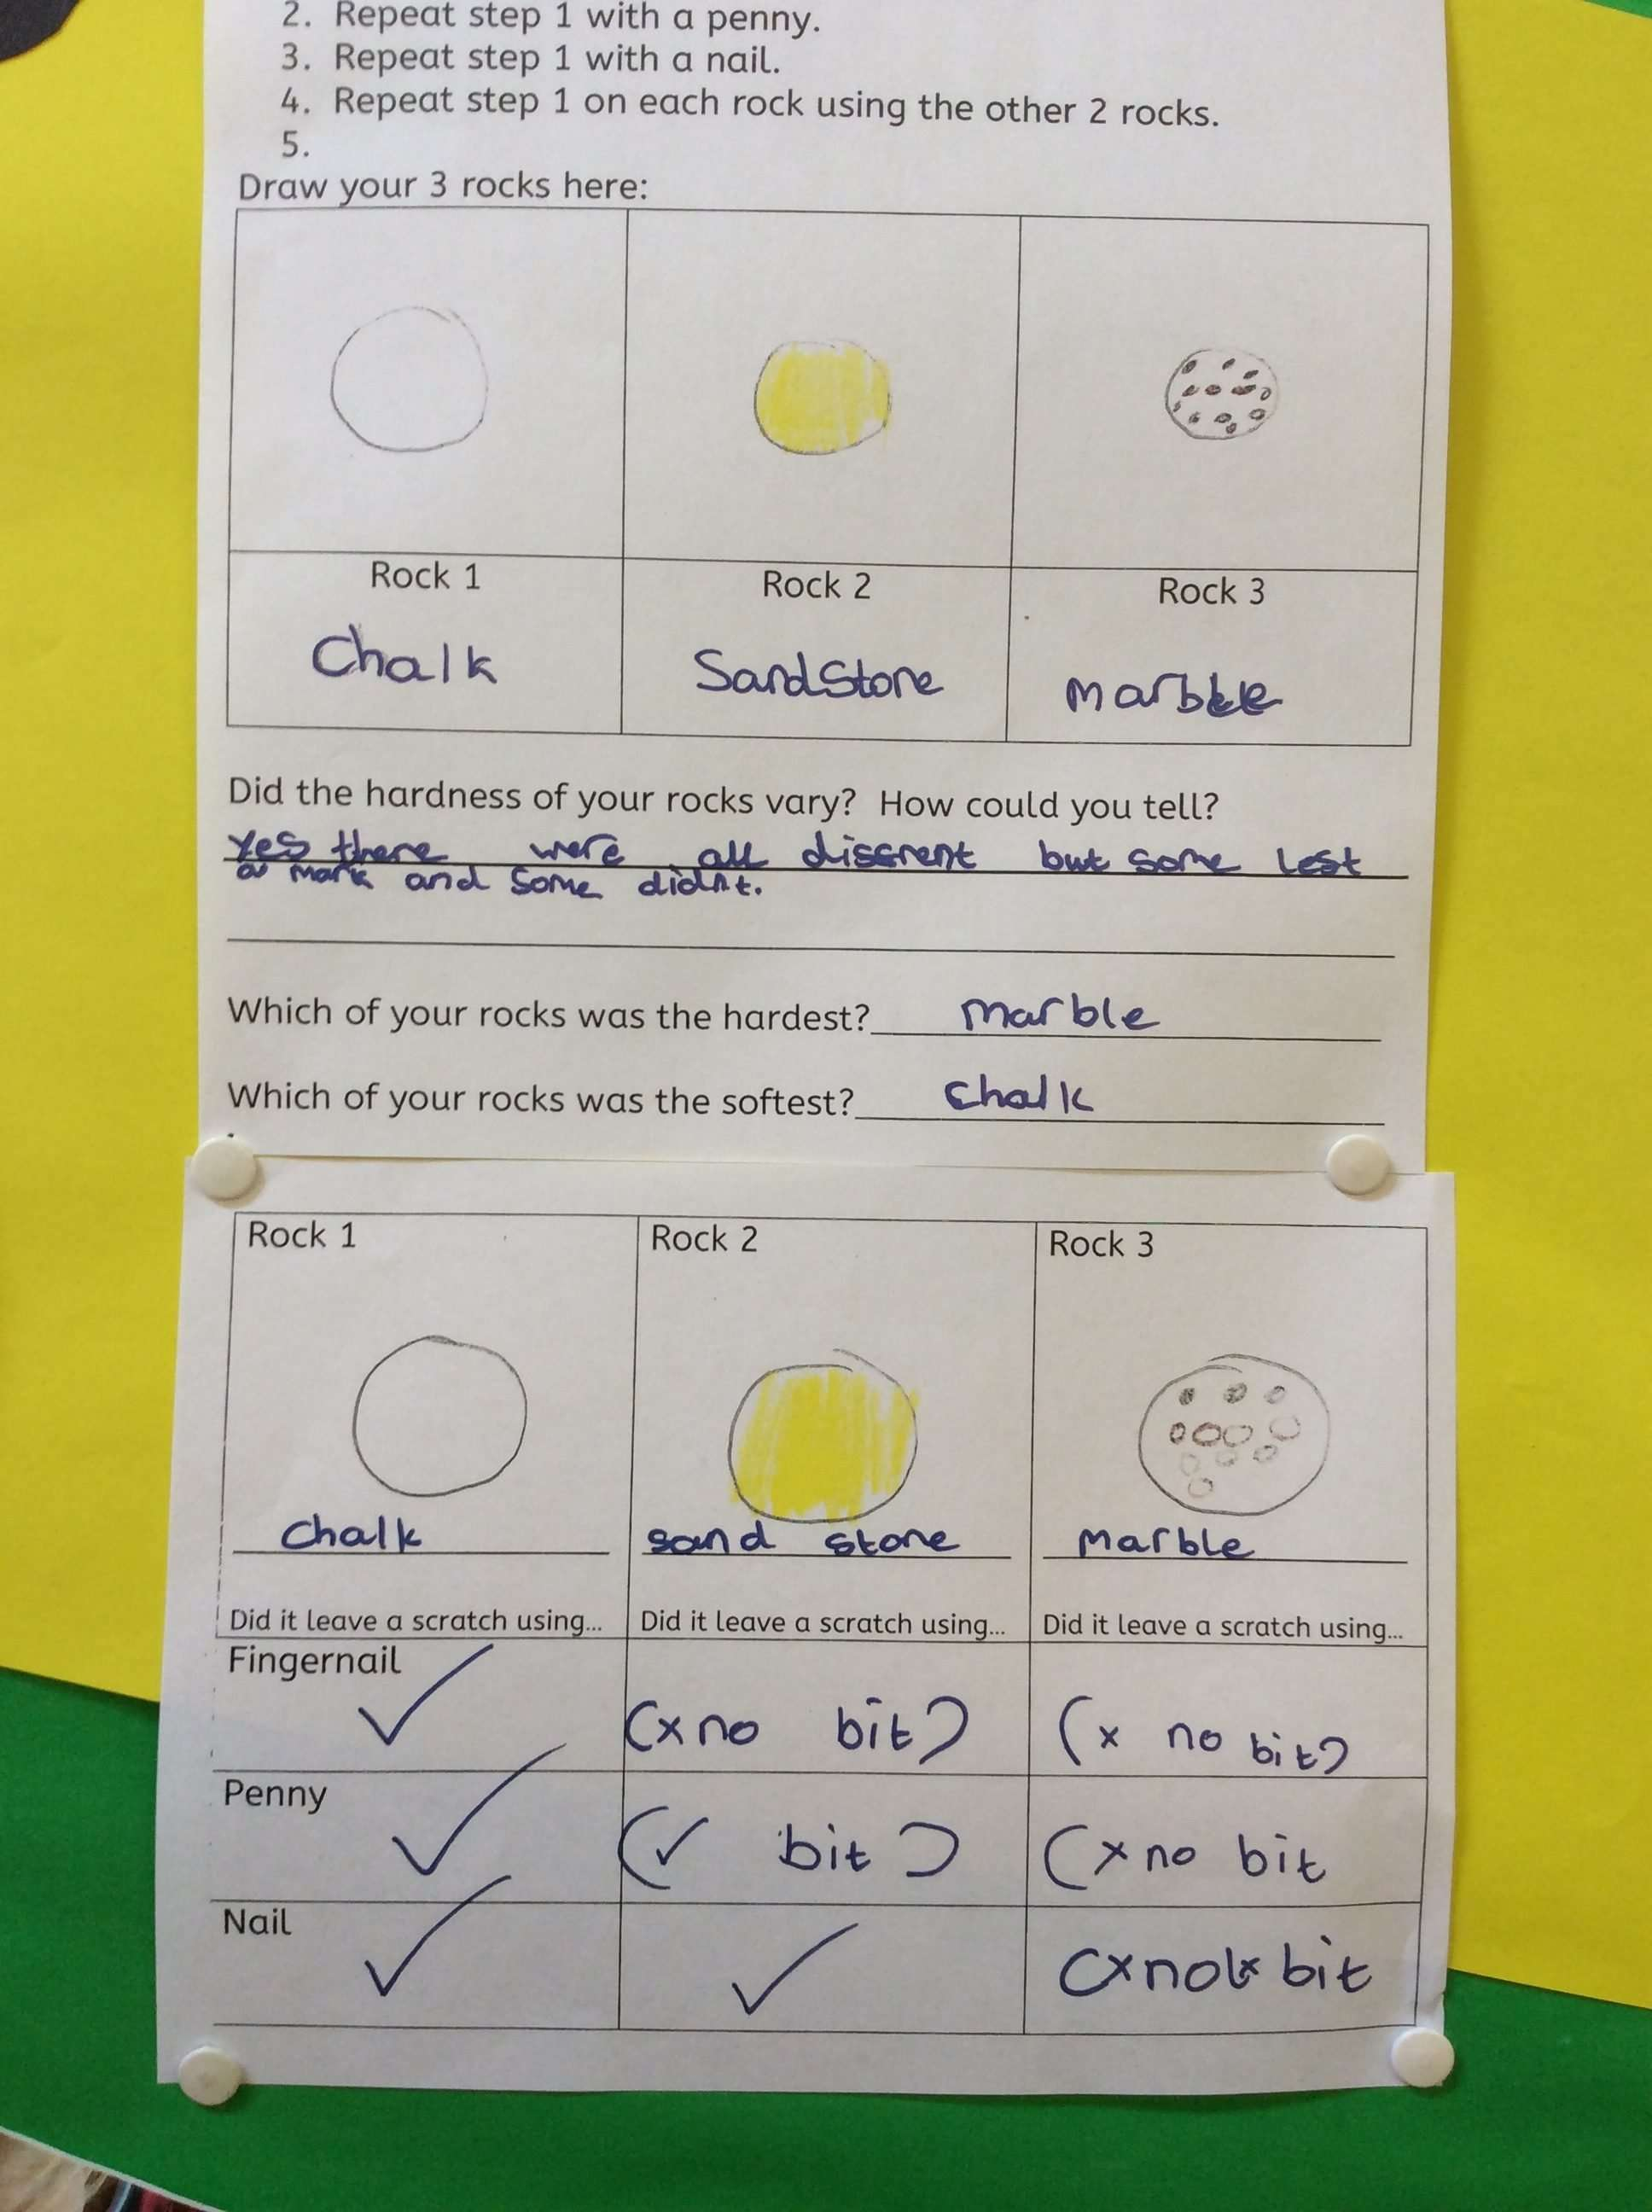 Y3 S Science Investigation Into The Hardness Of Rocks St